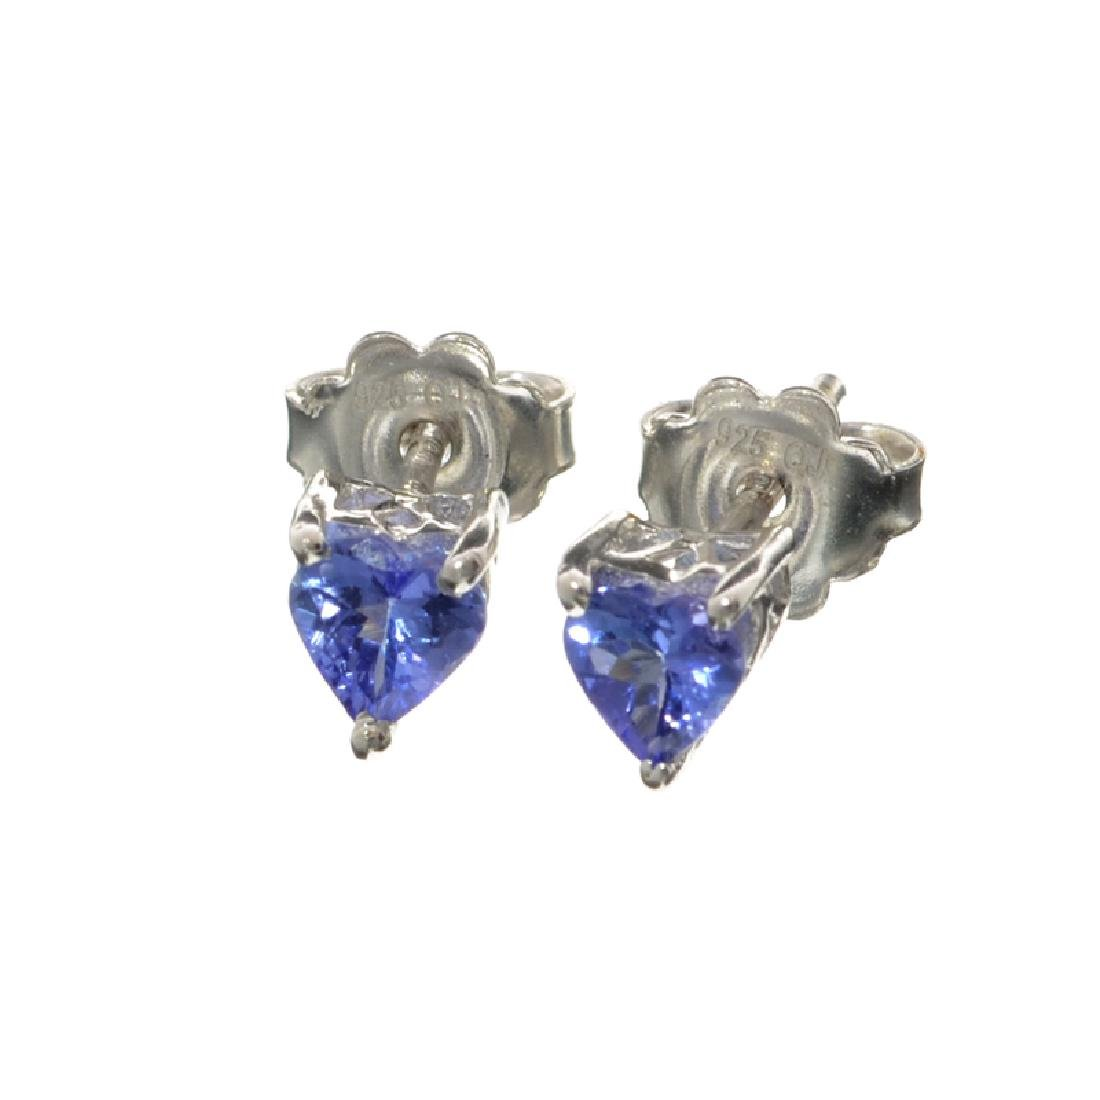 APP: 1k Fine Jewelry 1.20CT Heart Cut Tanzanite And